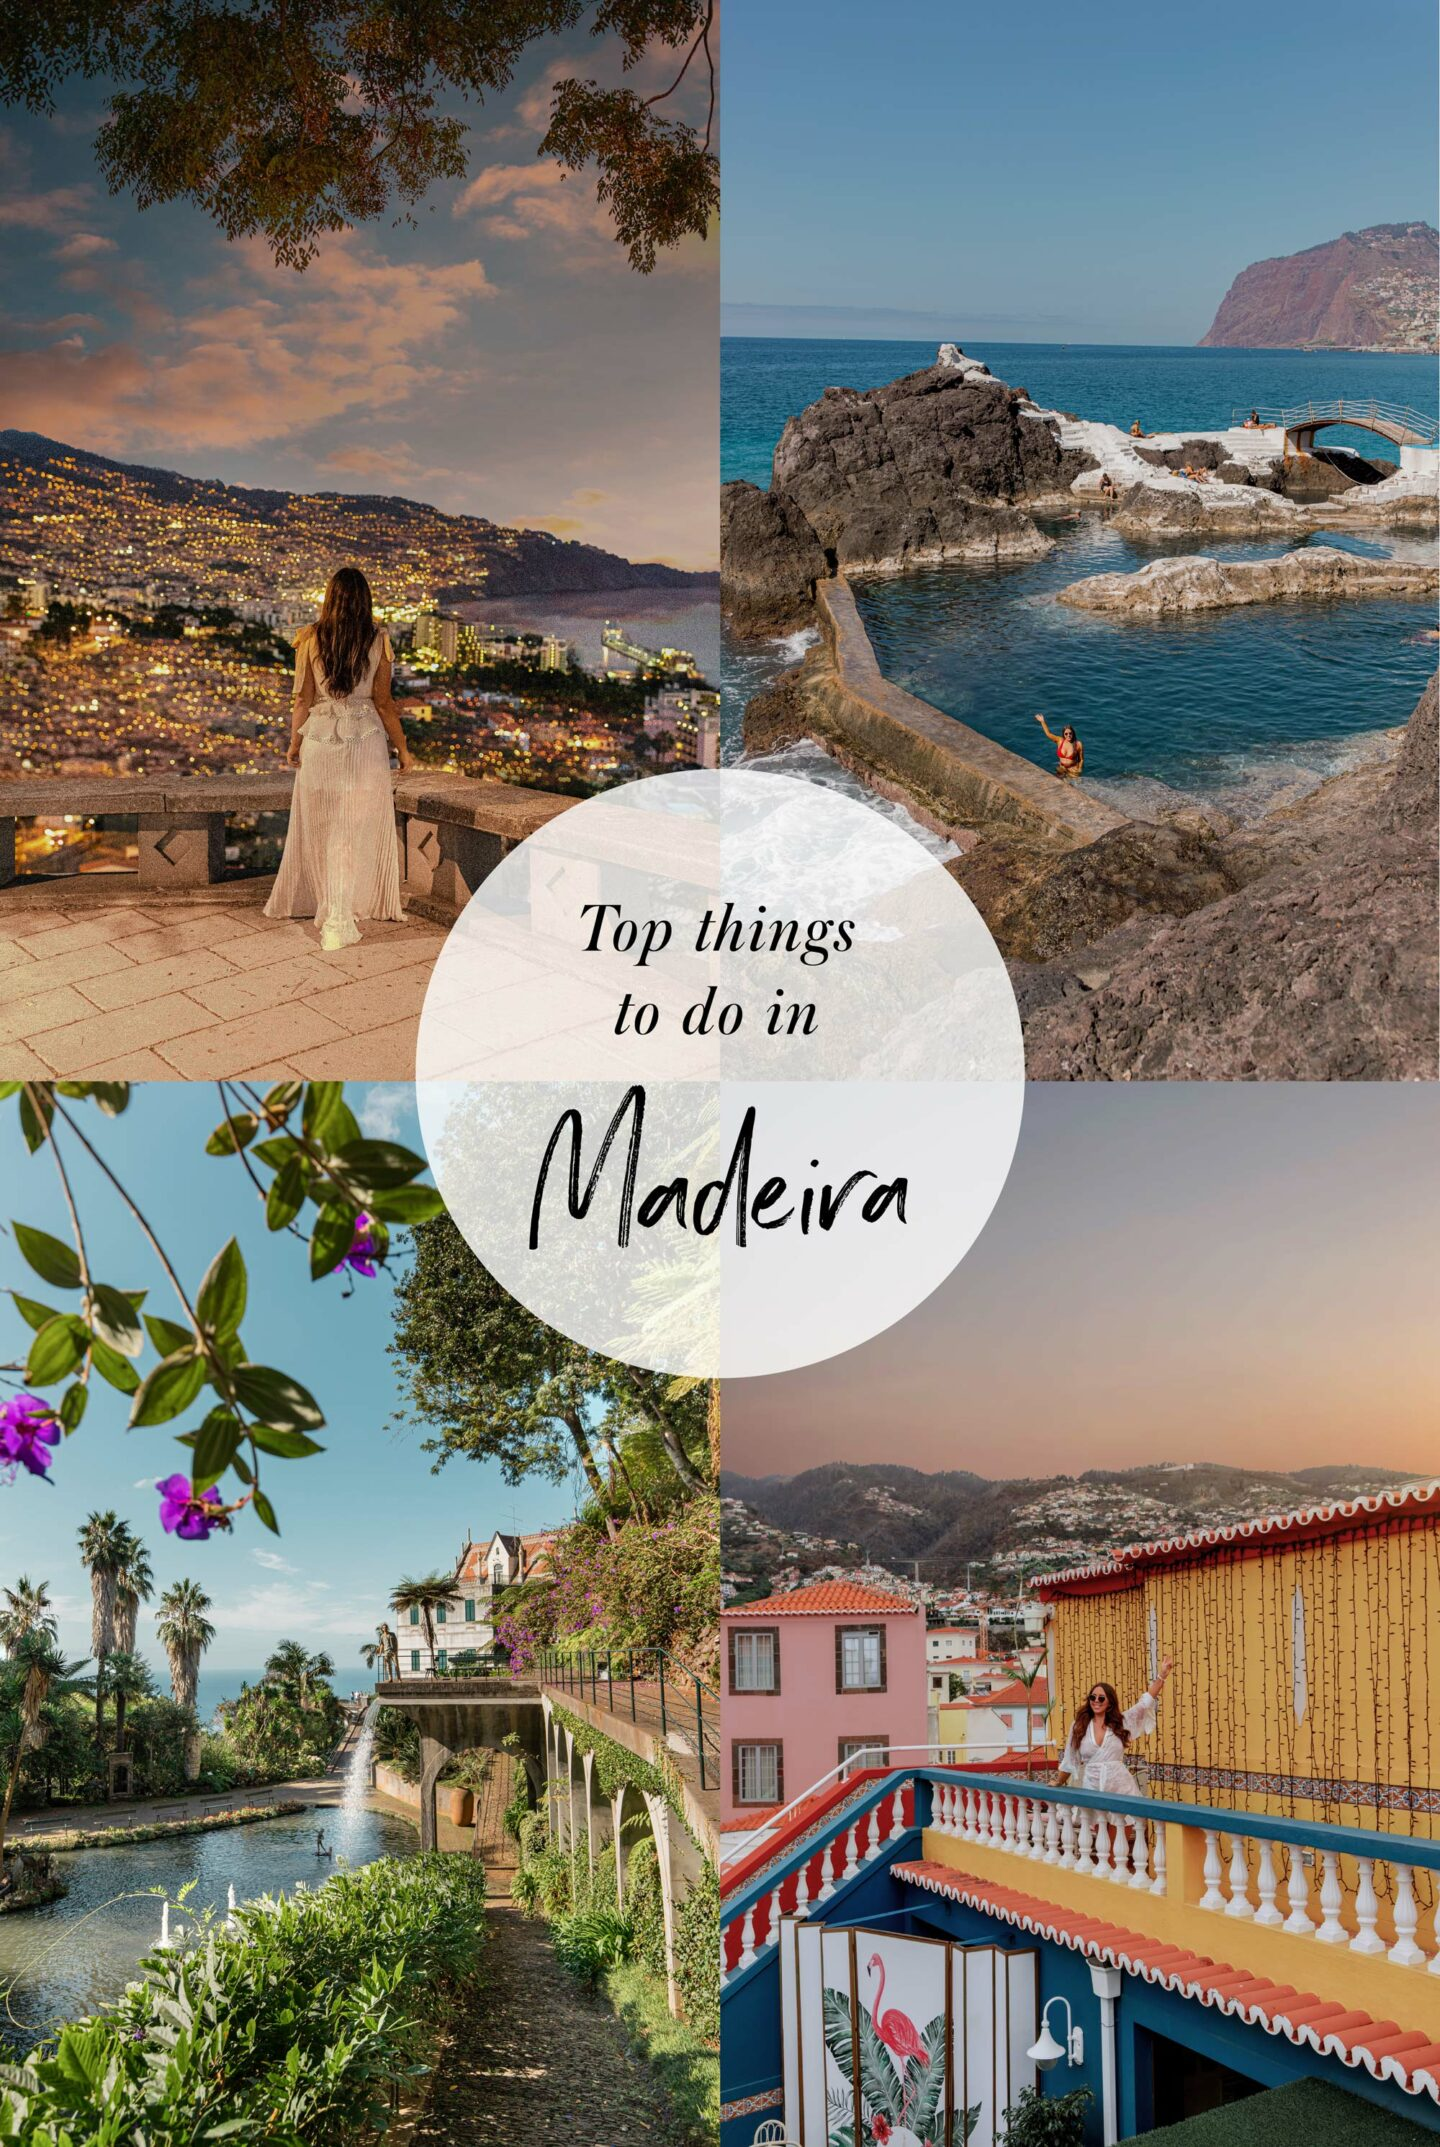 21-Top-things-to-do-in-madeira-Bucket-list--Instagram-Story-Template--kelseyinlondon-Kelsey-Heinrichs--What-to-do-in-madeira--Where-to-go-in-madeira-top-places-in-madeira-